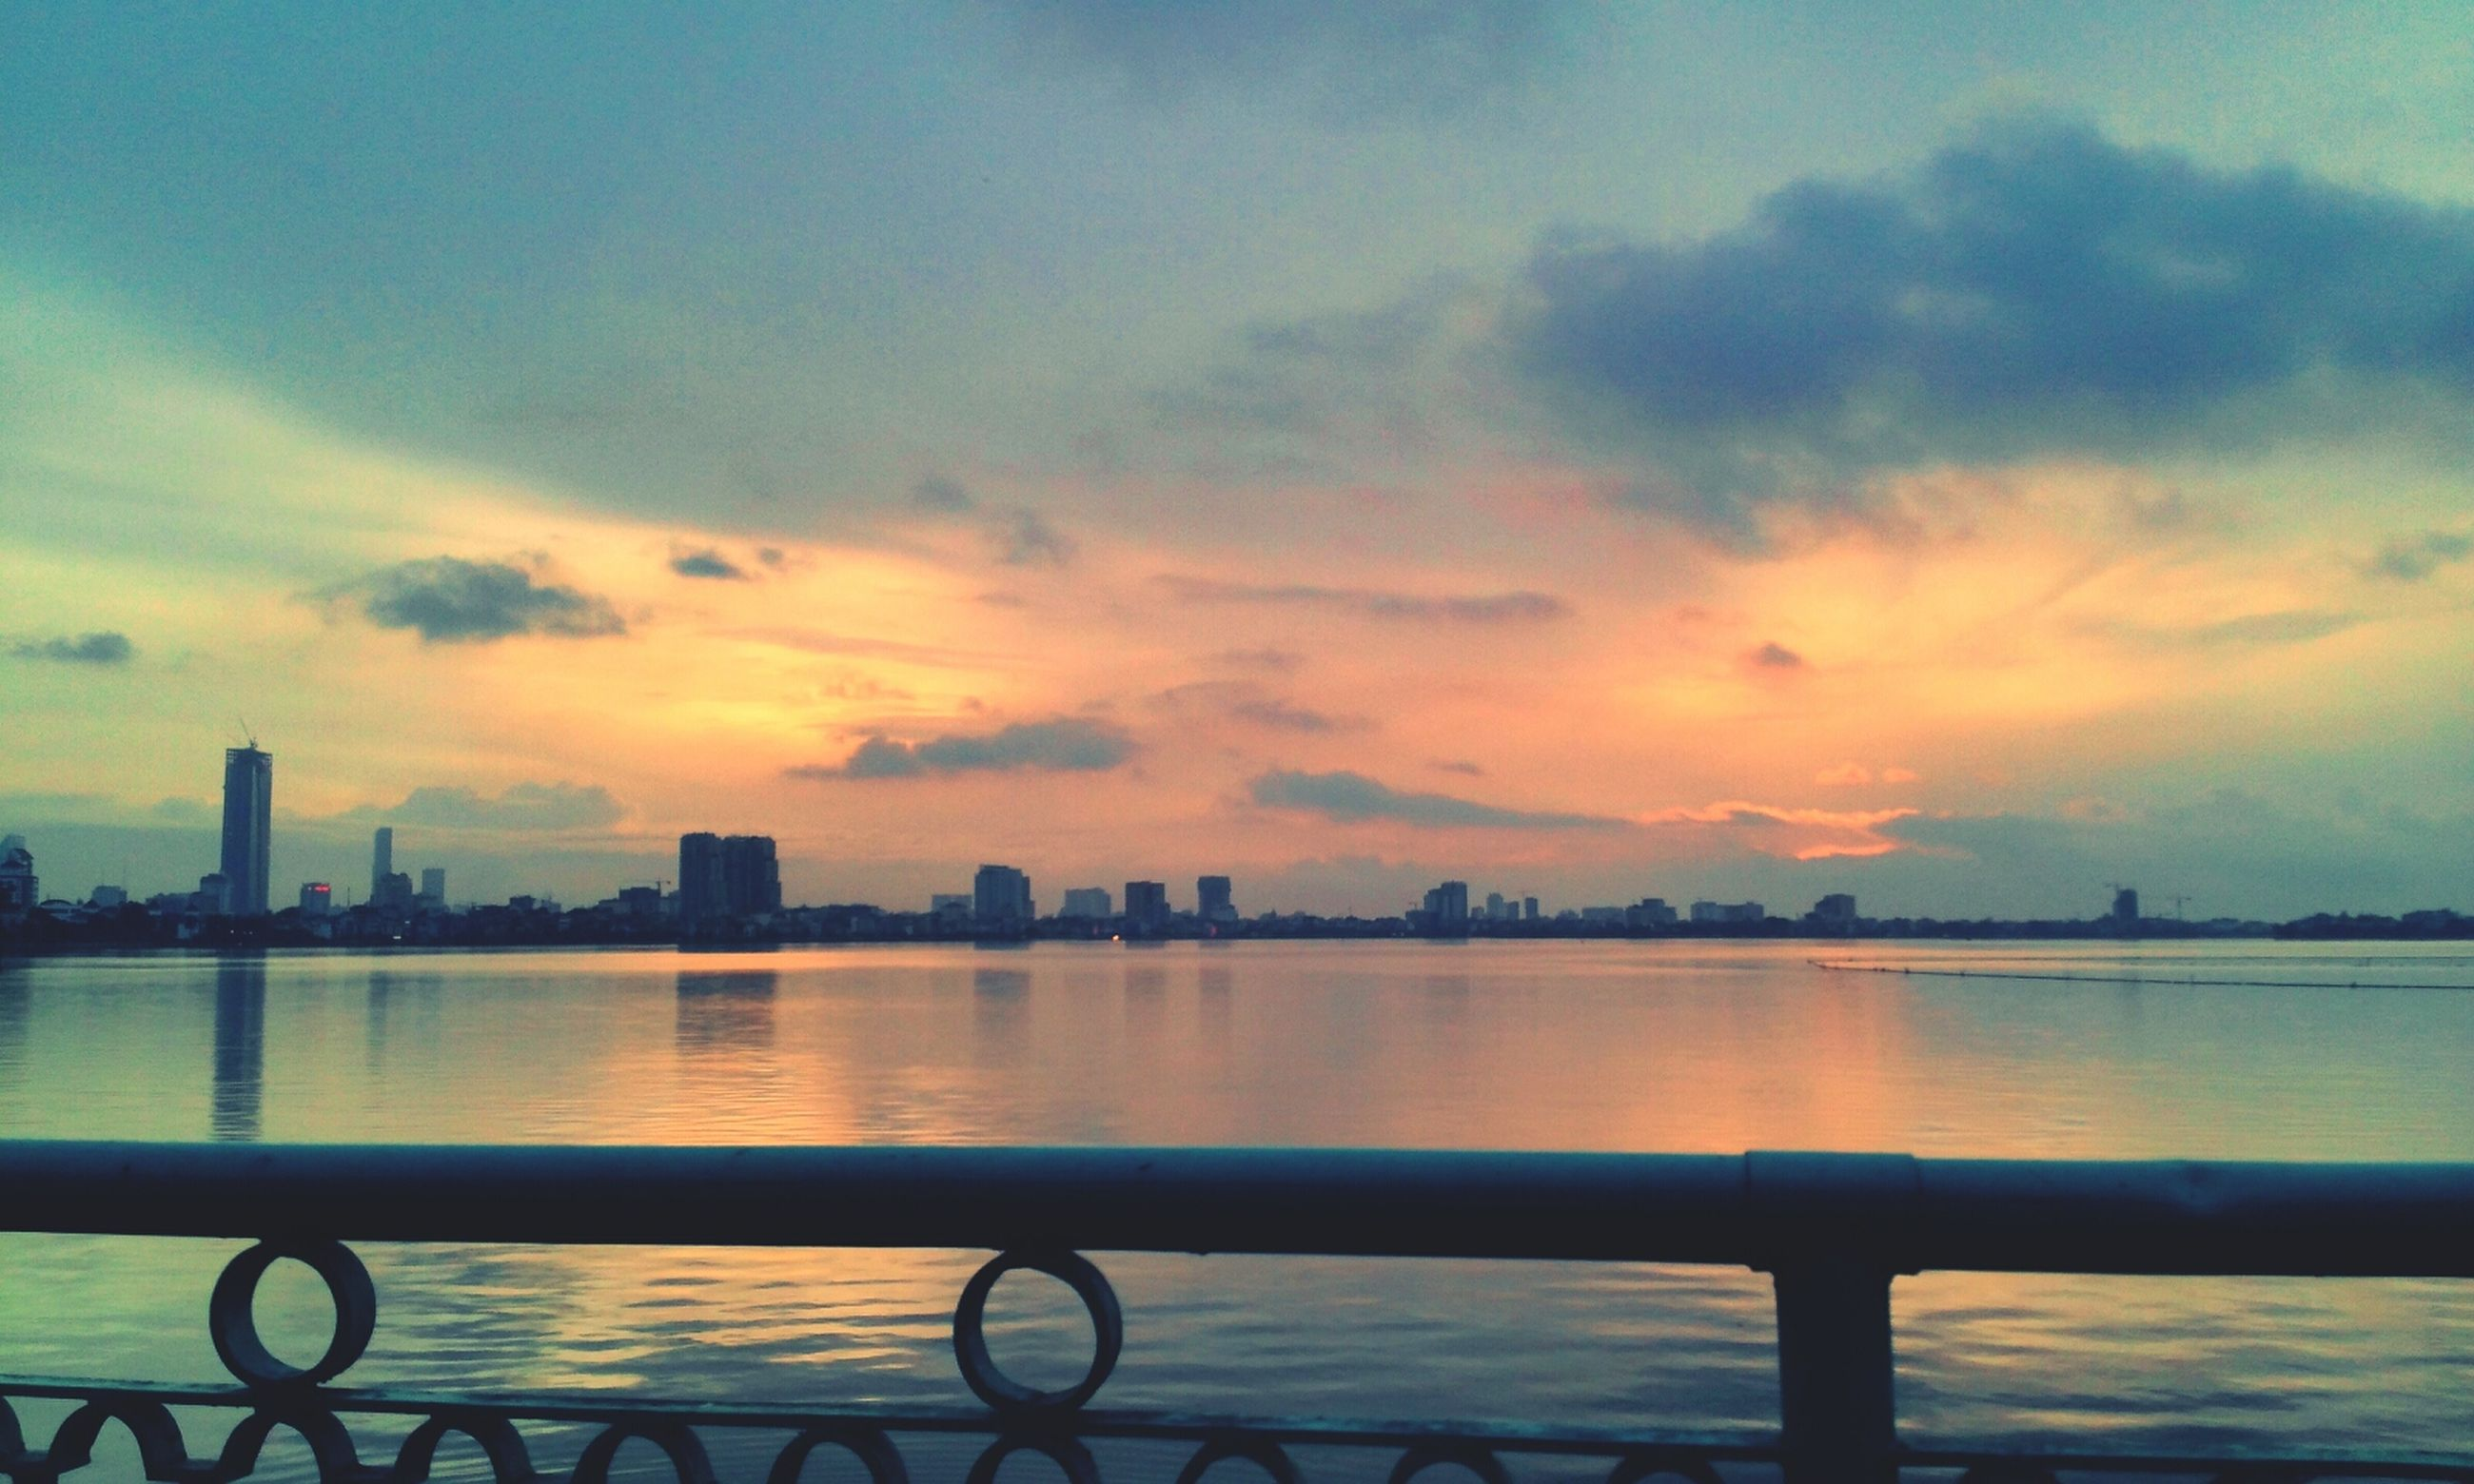 sunset, water, sky, railing, cloud - sky, sea, silhouette, river, orange color, tranquility, scenics, nature, tranquil scene, transportation, beauty in nature, built structure, cloud, bicycle, lake, outdoors